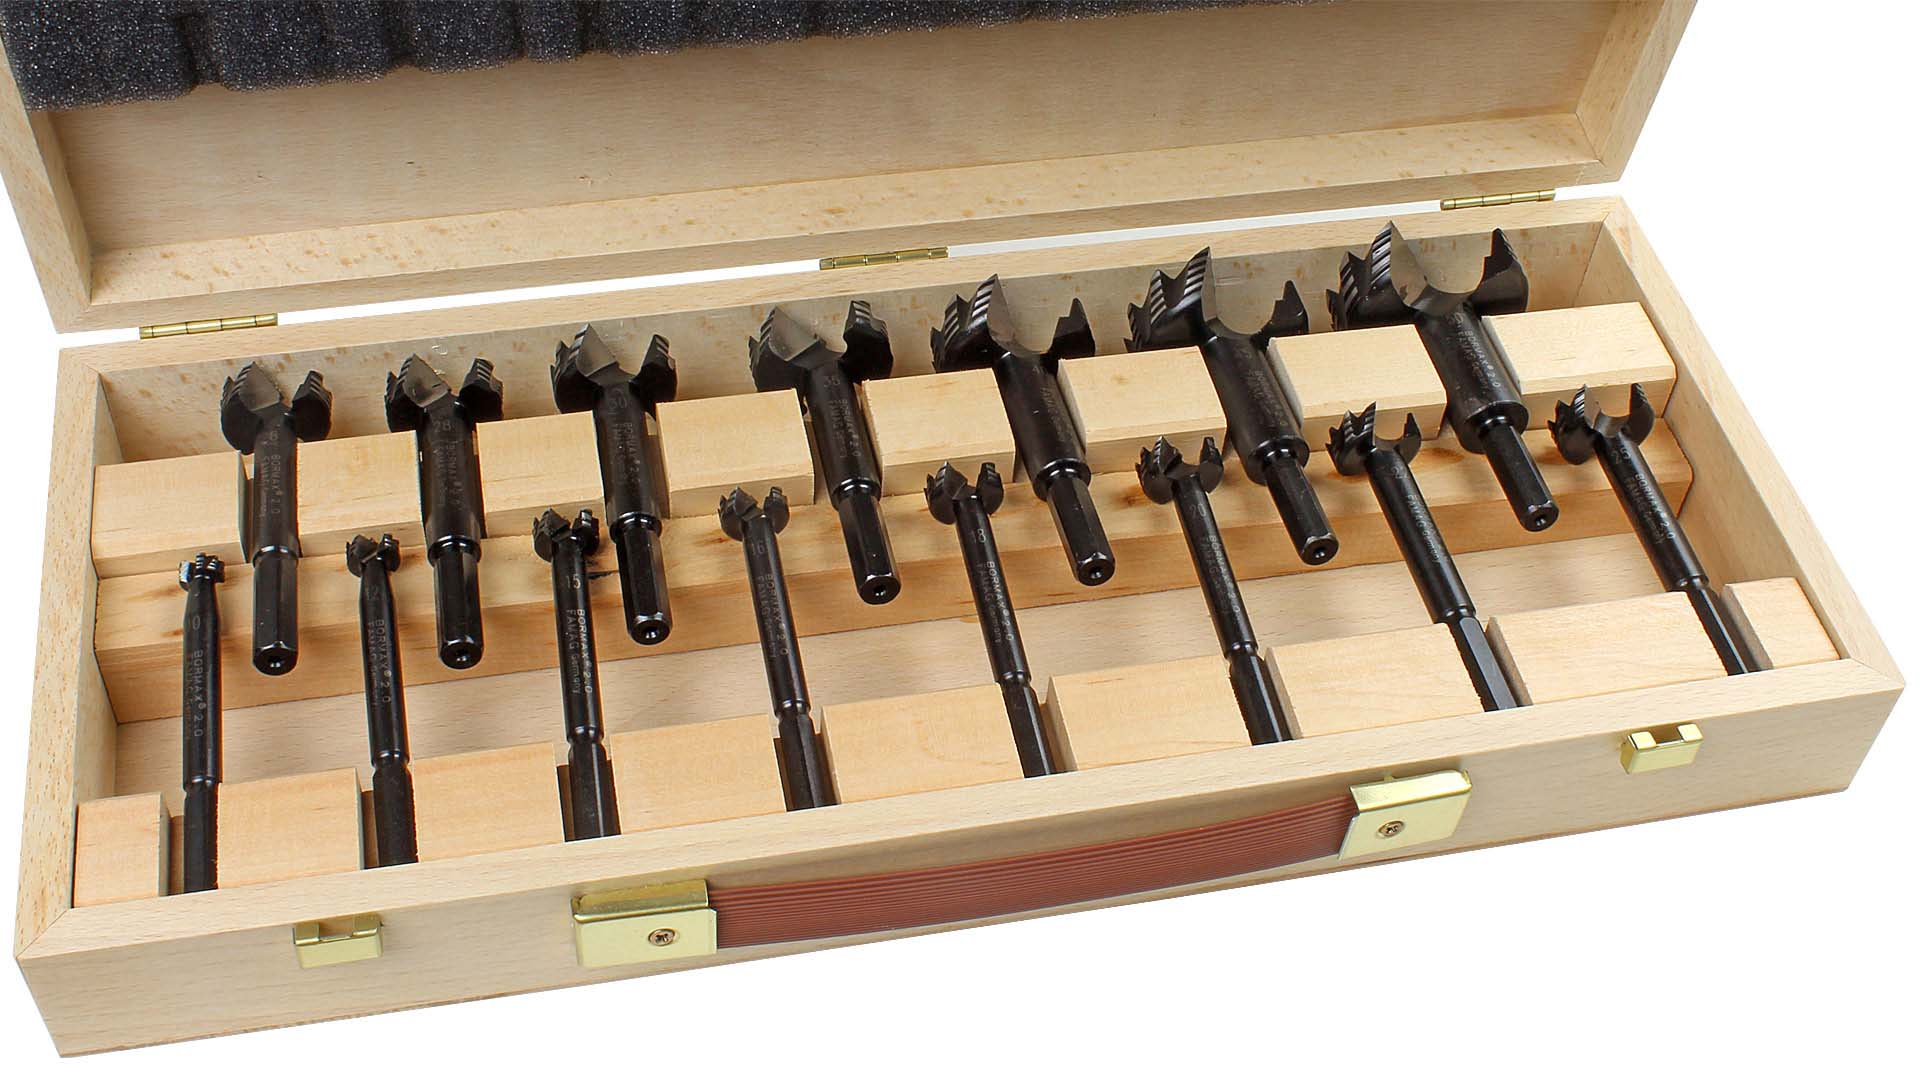 15 To 50 MM 9-teiliger Set IN Wooden Box Famag 1624.509 Bormax 2.0 Ws First